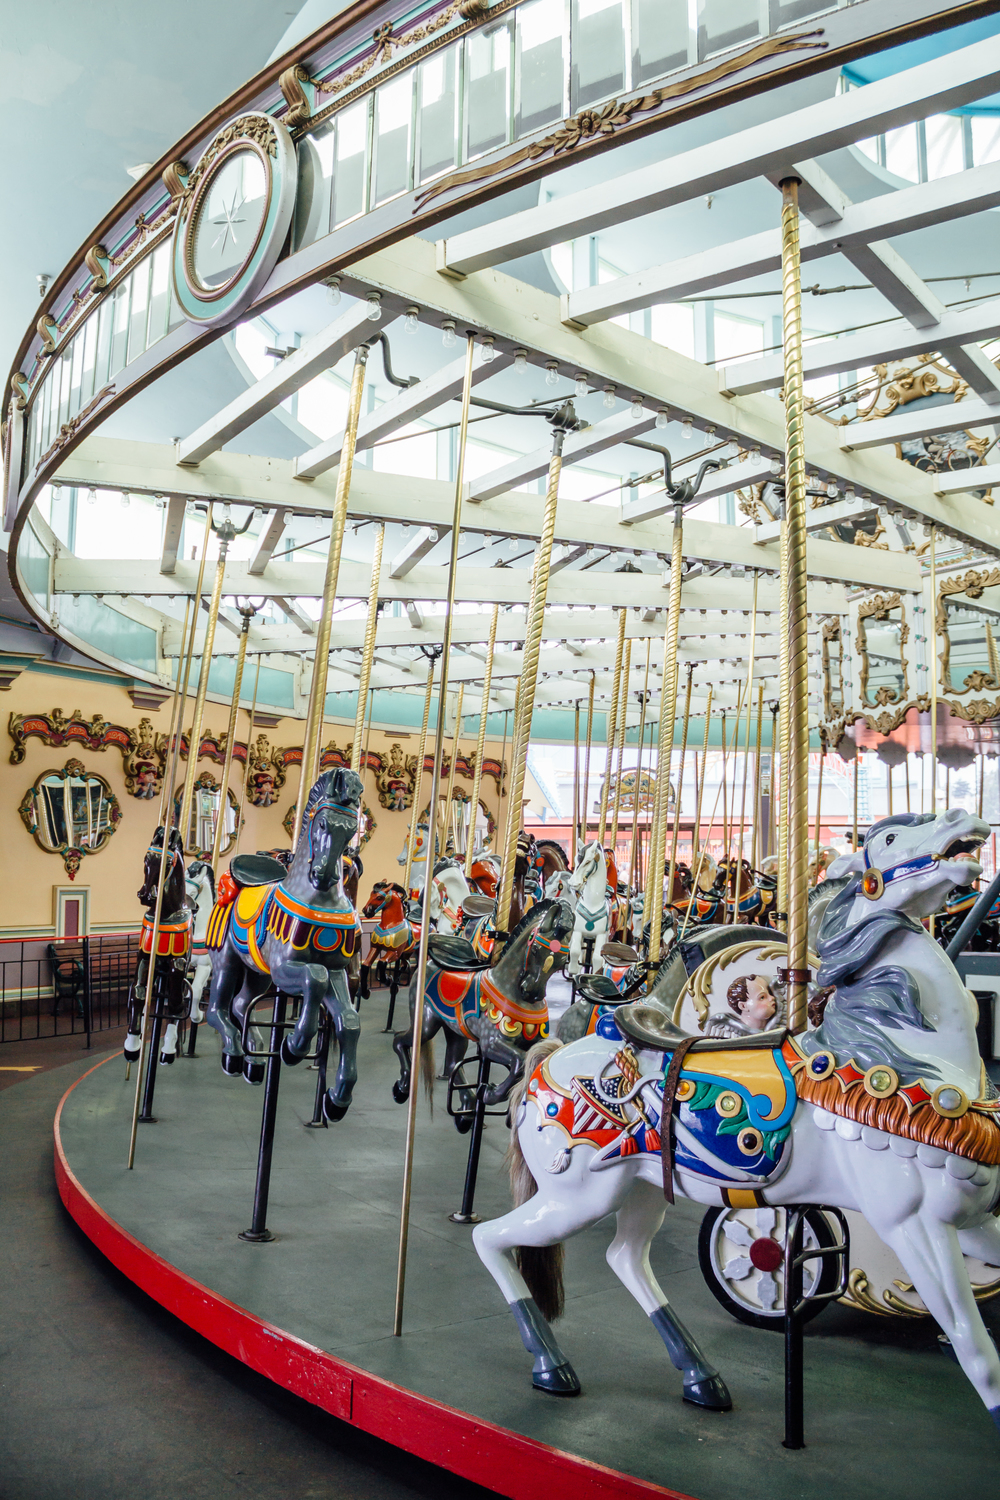 Carousel by Catherine Alyce